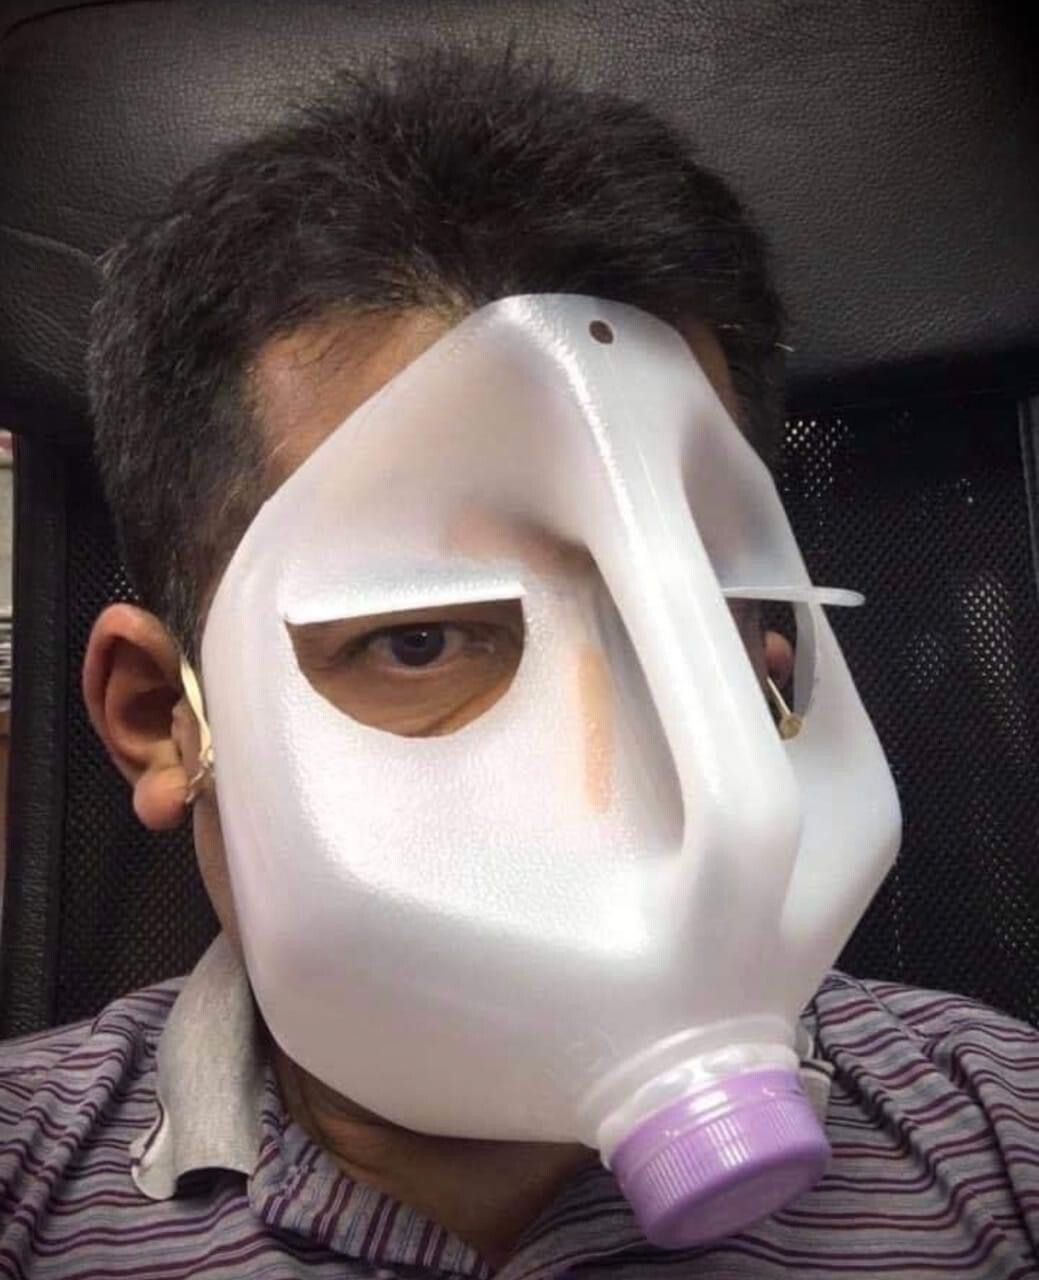 CLUB GIGGLE funny-masks9 Top 34 Hilariously Creative Ways People Are Protecting Themselves That Are Questionable...